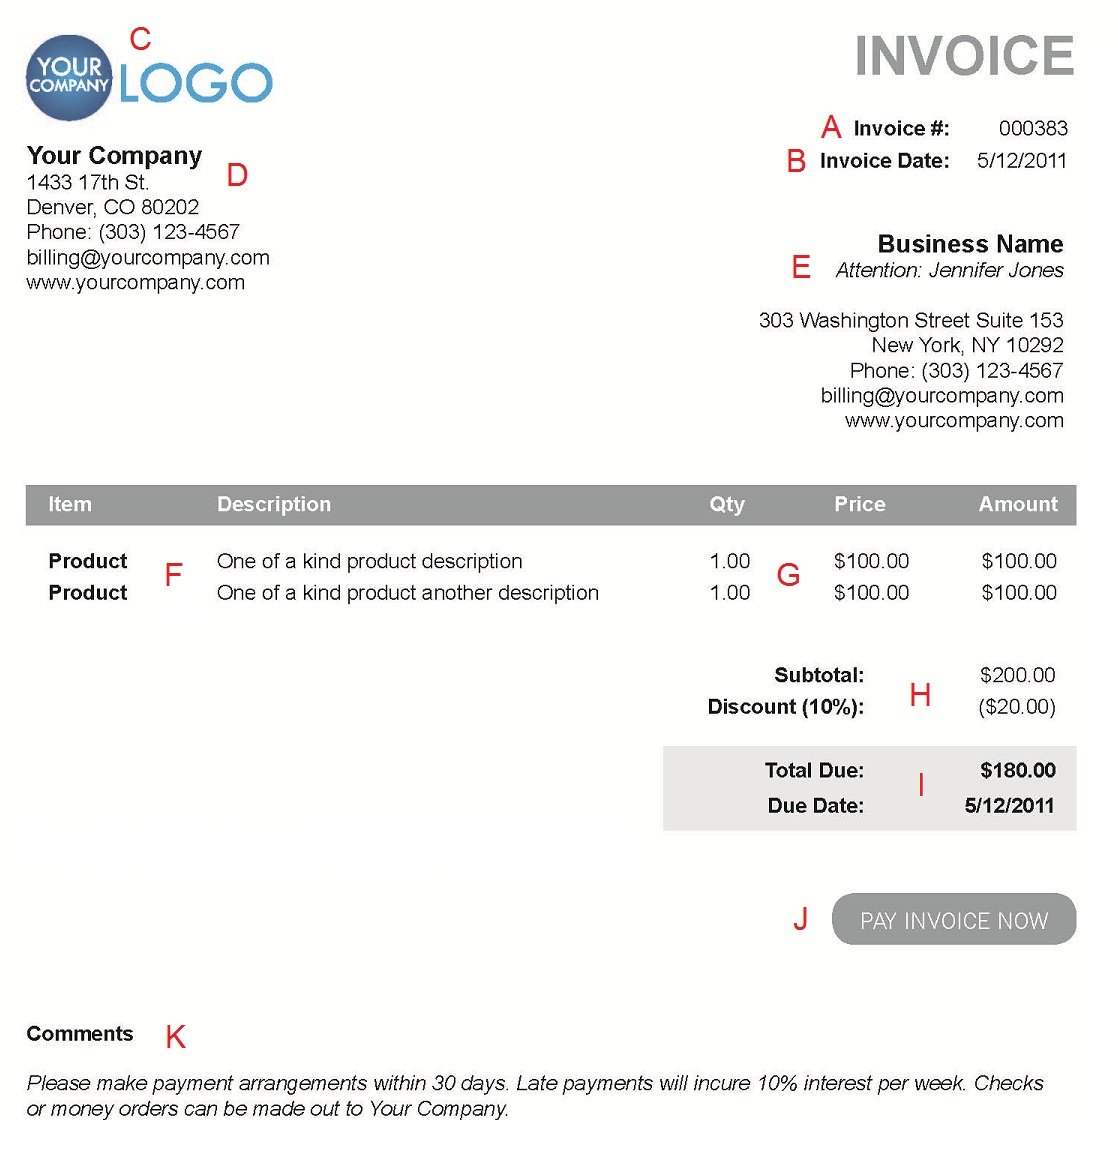 Pigbrotherus  Sweet The  Different Sections Of An Electronic Payment Invoice With Marvelous A  With Endearing Free Invoice Template Pdf Download Also Invoice Amount In Addition Invoicing Process And Car Invoice Pricing As Well As What Is Dealer Invoice Price Additionally Vendor Invoice Management From Paysimplecom With Pigbrotherus  Marvelous The  Different Sections Of An Electronic Payment Invoice With Endearing A  And Sweet Free Invoice Template Pdf Download Also Invoice Amount In Addition Invoicing Process From Paysimplecom